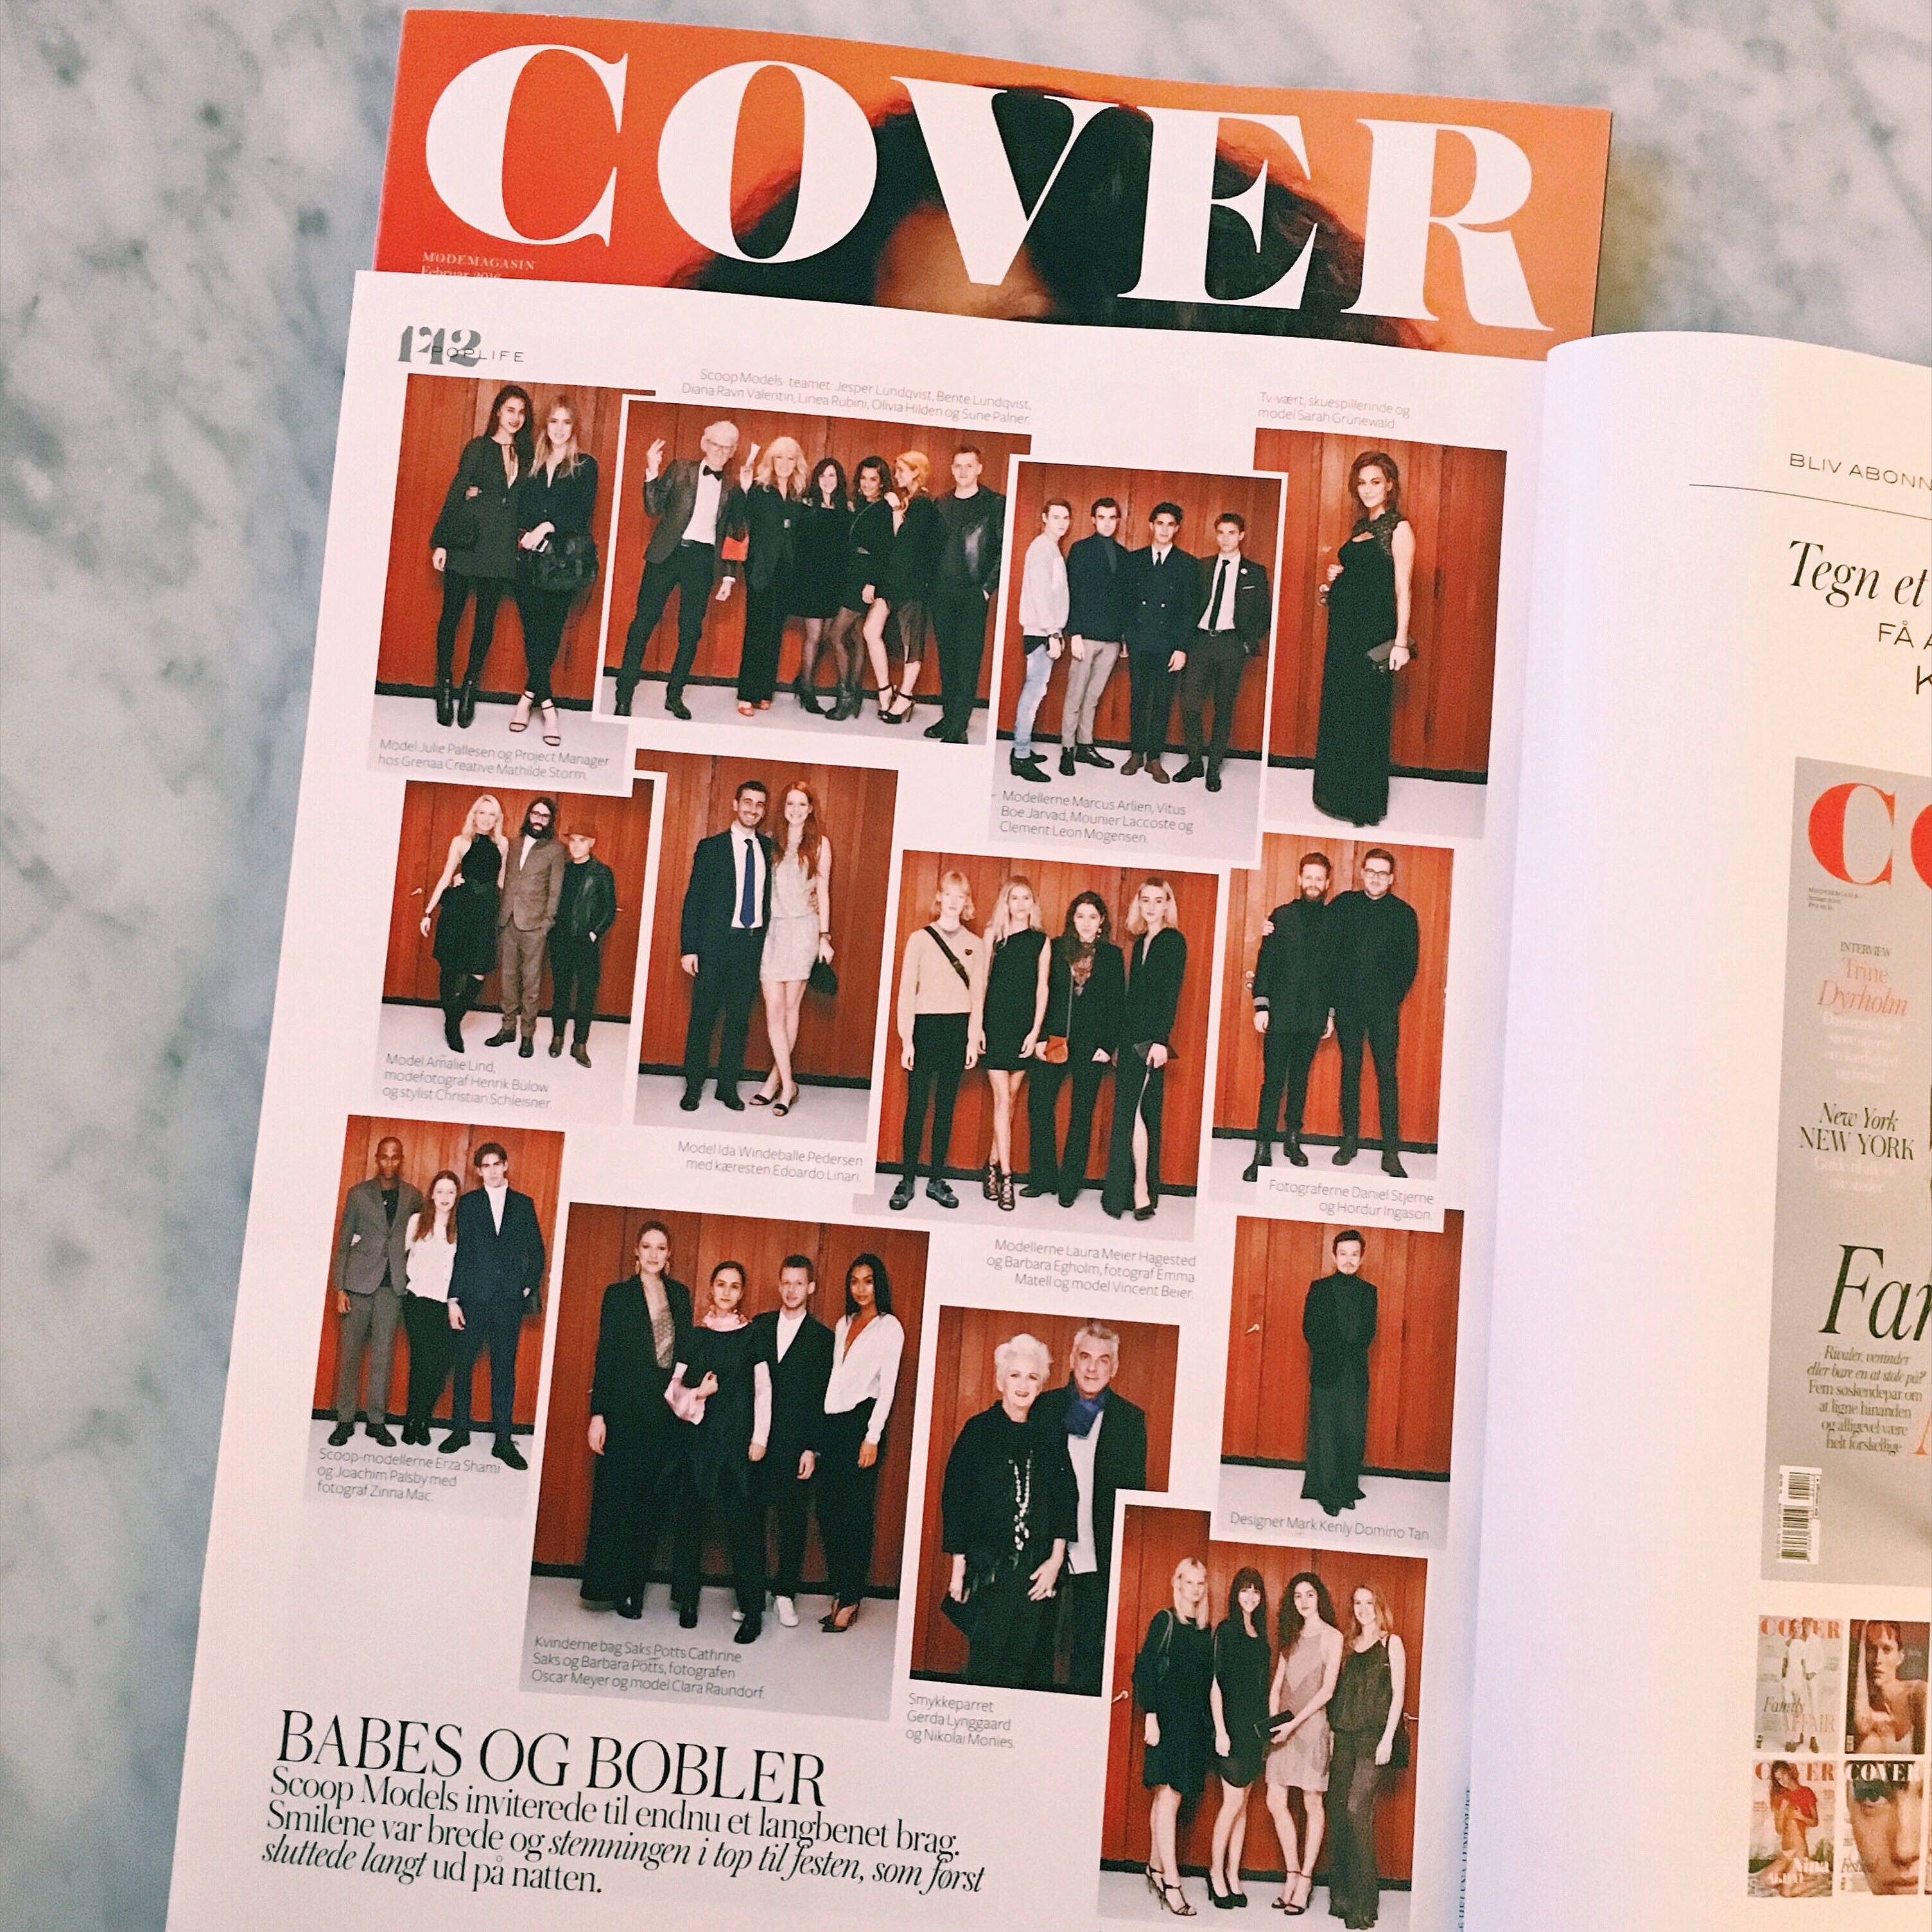 ScoopXmasparty_CoverMag-HelenaLundquist.